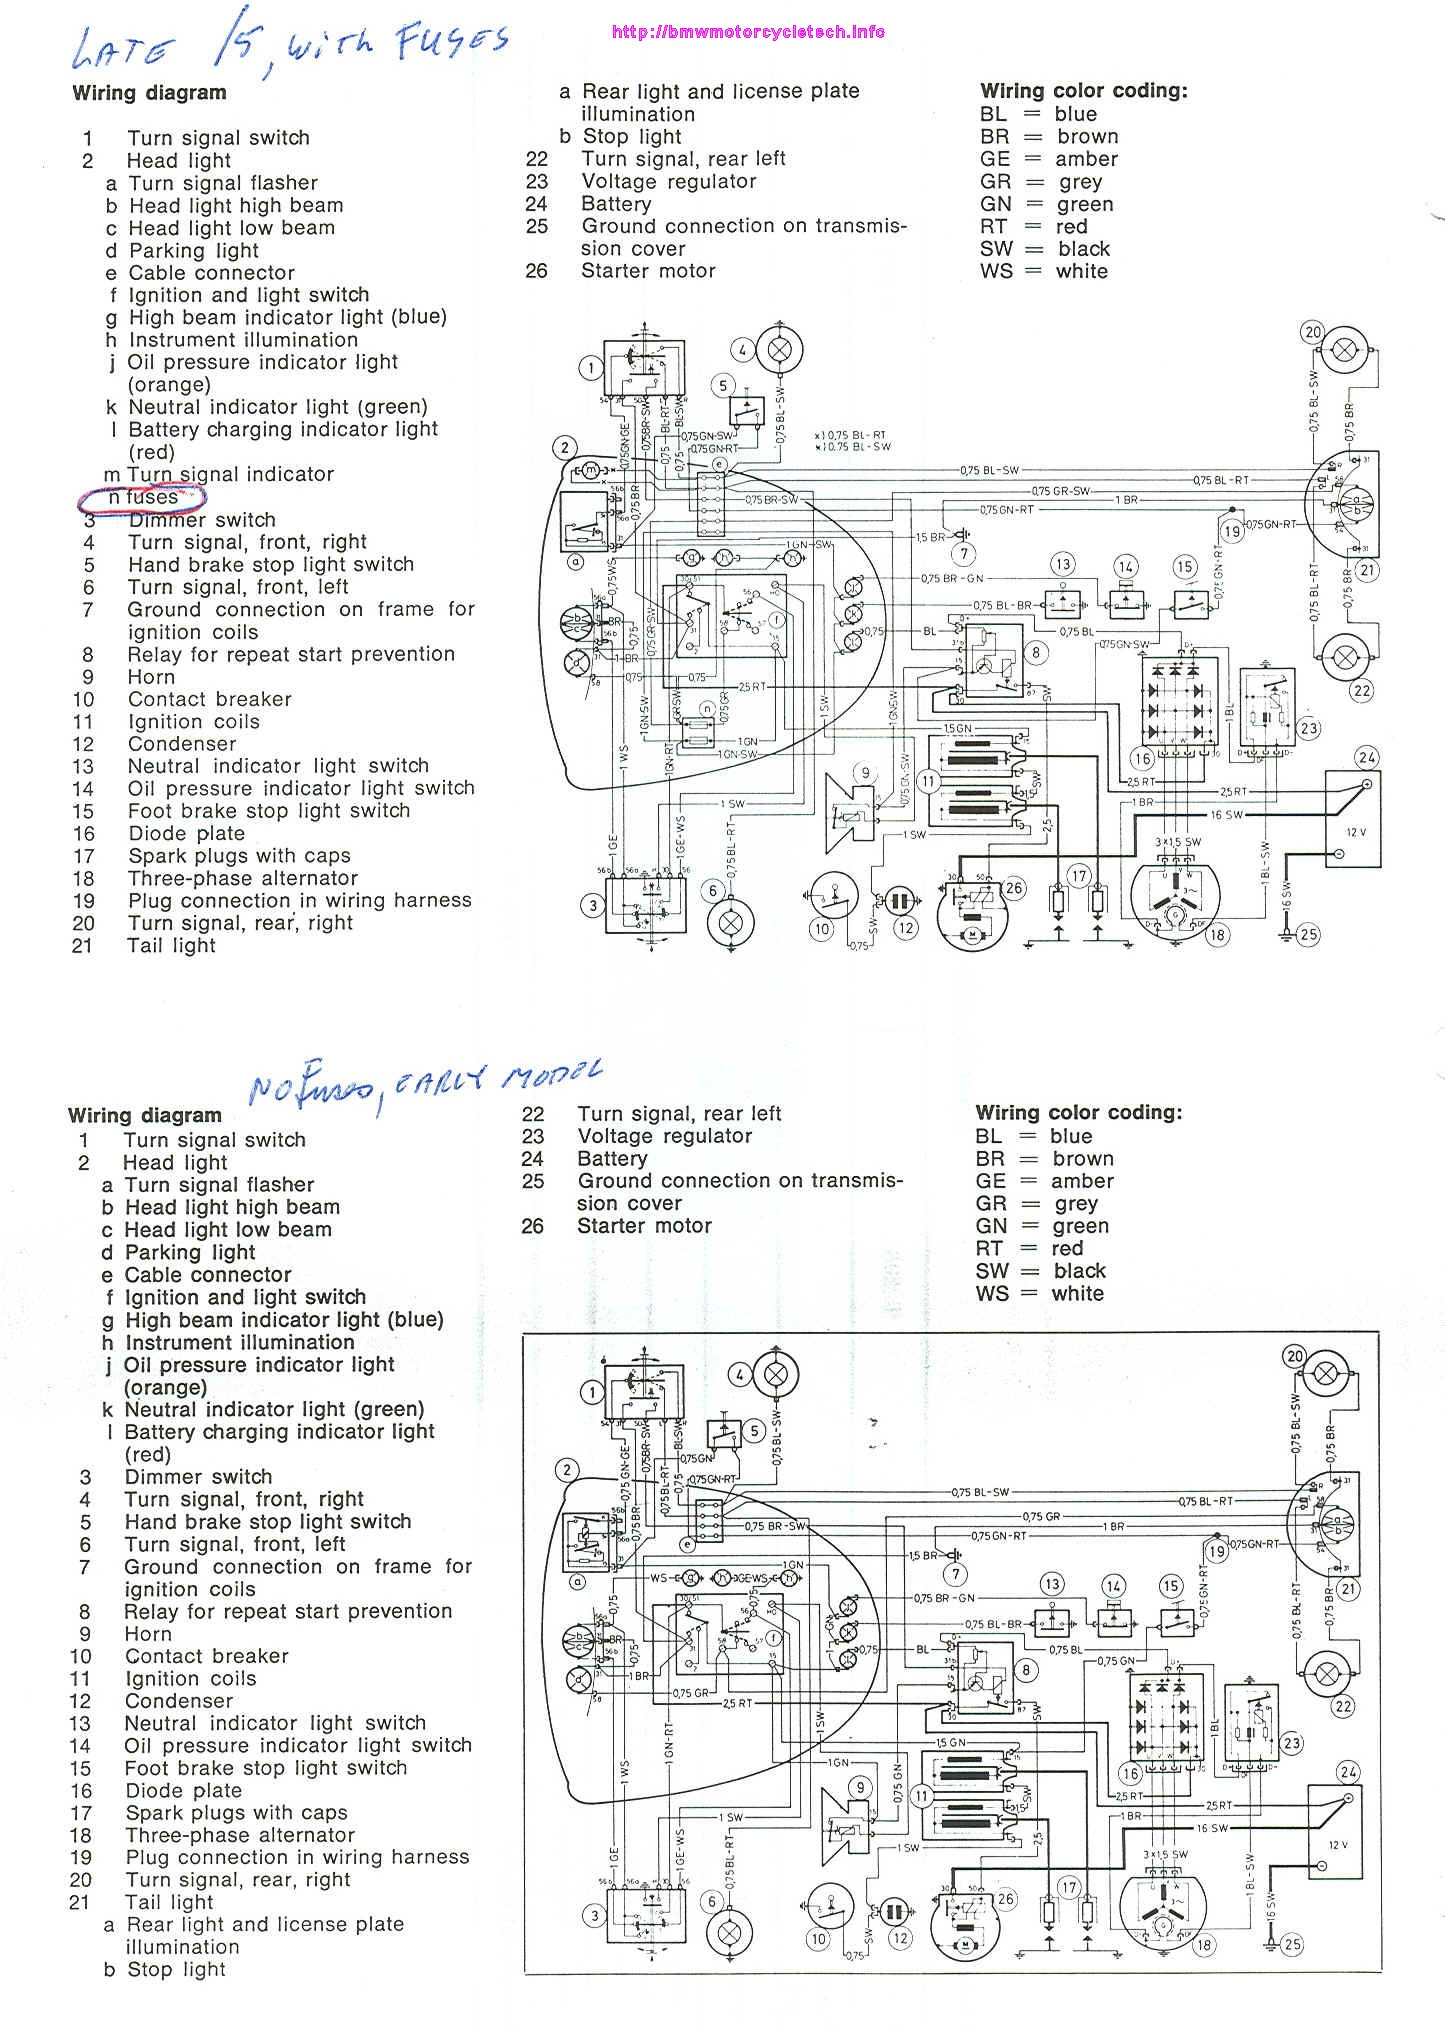 Snowbum Bmw Motorcycle Technical Articles Maintenance Snobum Active Electric B Wiring Diagrams Schematic For Both Early And Late 5 Model Had No Fuses Set Your Browser To Expand The Image As Needed It Will Be Cleanly Displayed